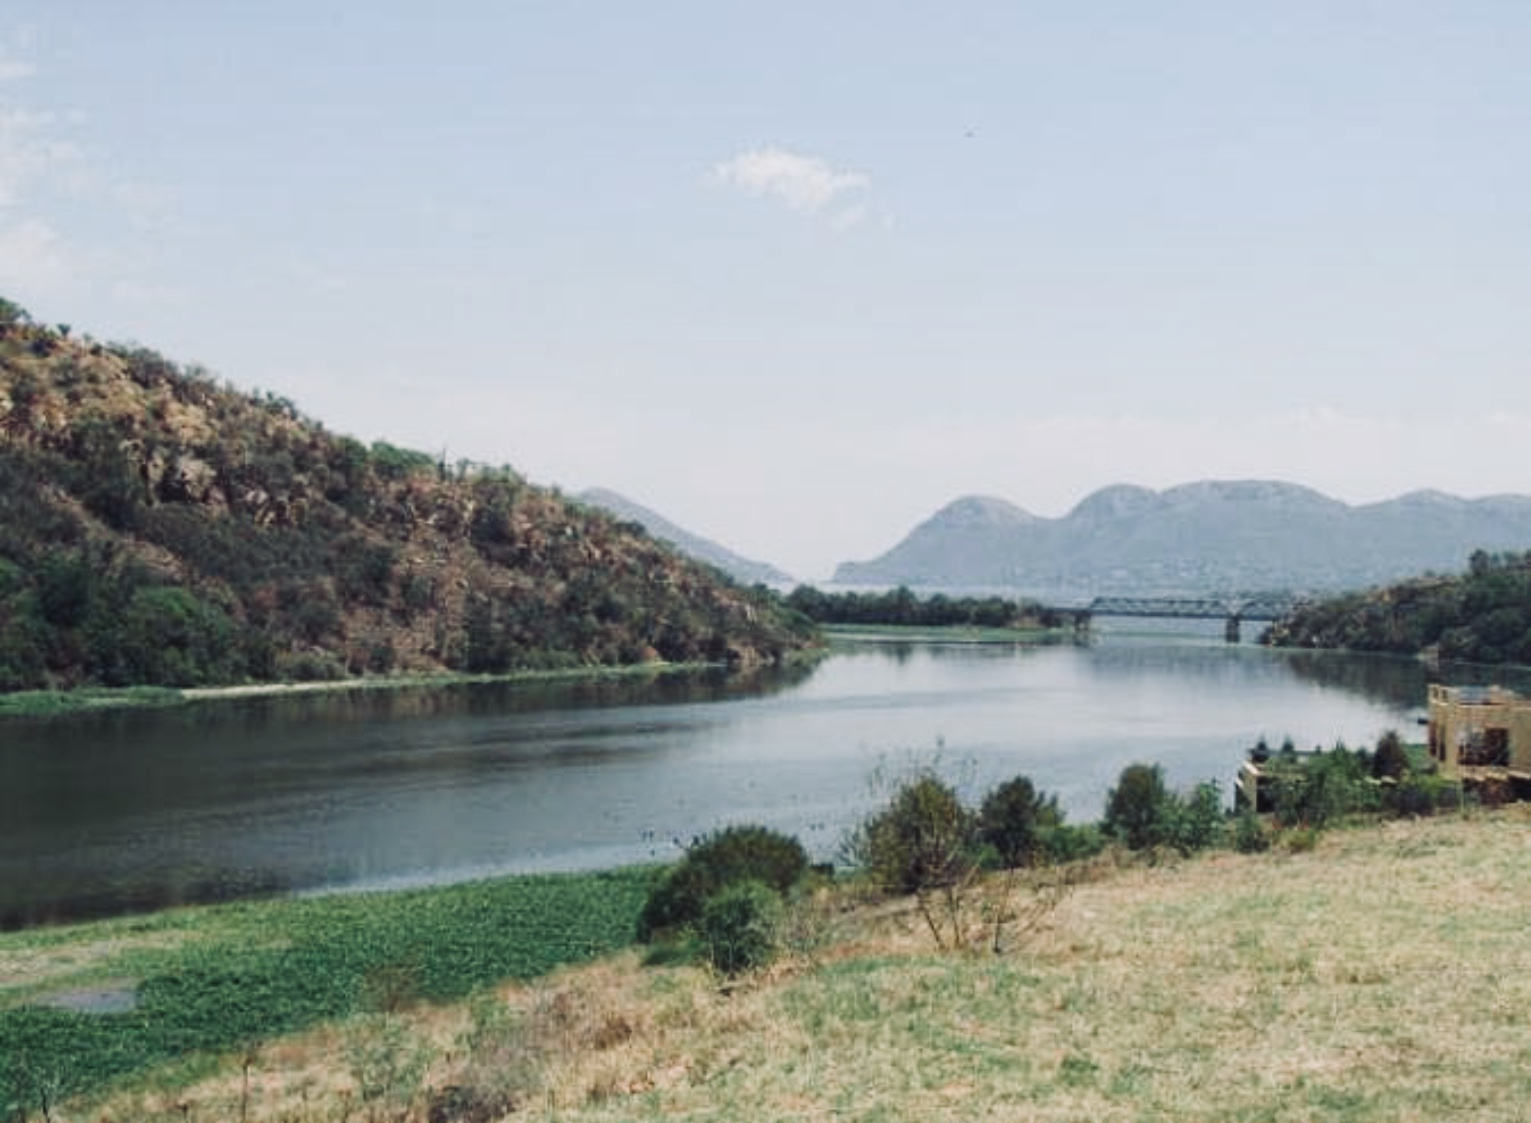 700sqm stand situated in Ville d' Afrique, Estate d' Afrique, Hartbeespoort Dam. The stand boasts with views of the mountain reserve, Crocodile river and dam wall.